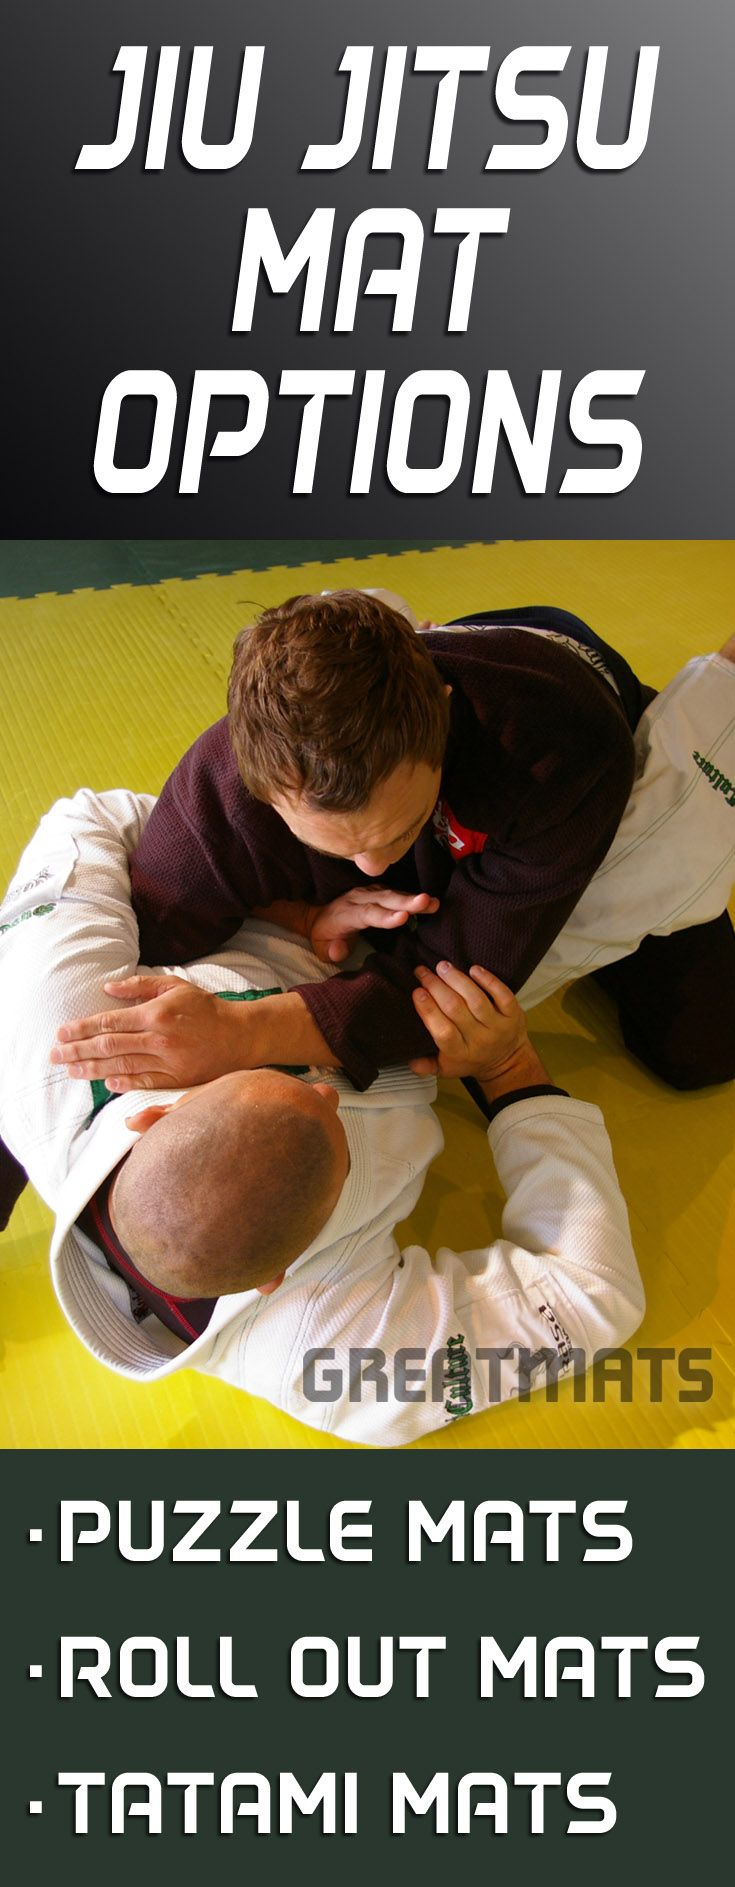 Greatmats offers one of the largest selections of jiu jitsu mats available.